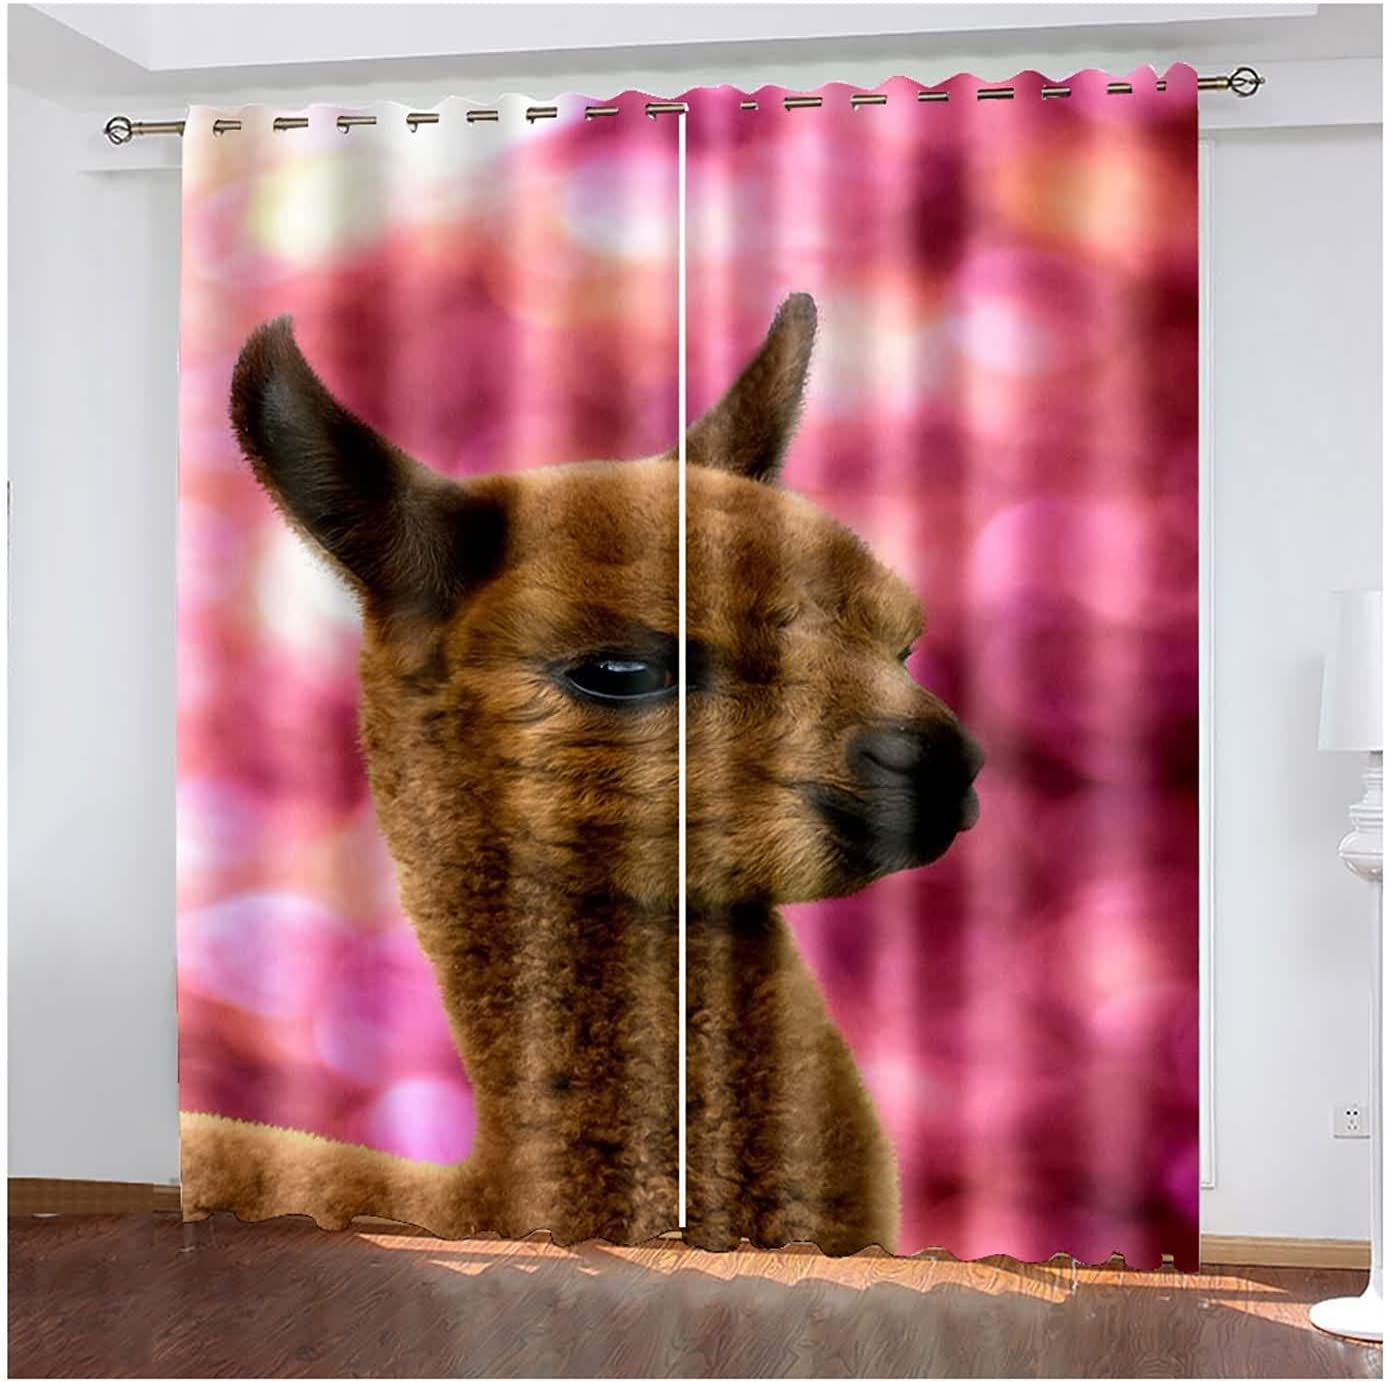 Bedroom Blackout Curtains 2 Rare Panel Room Sets Living New popularity Drapes Curta